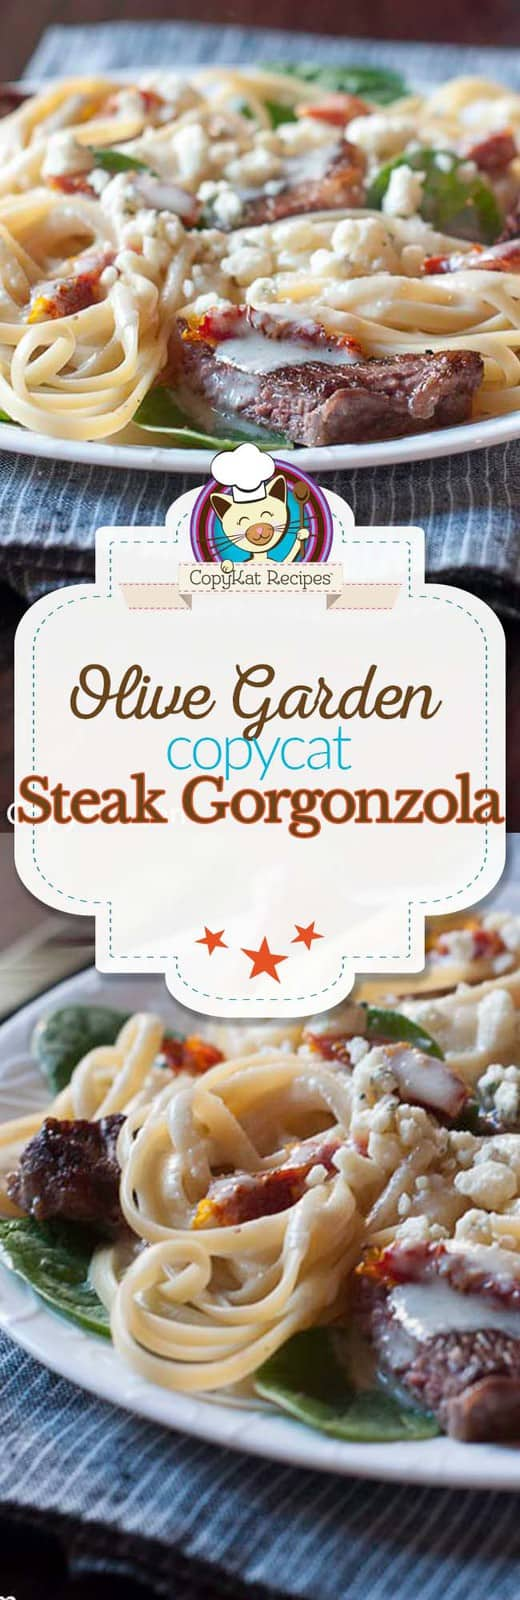 Olive Garden Steak Gorgonzola Alfredo Copycat Recipe